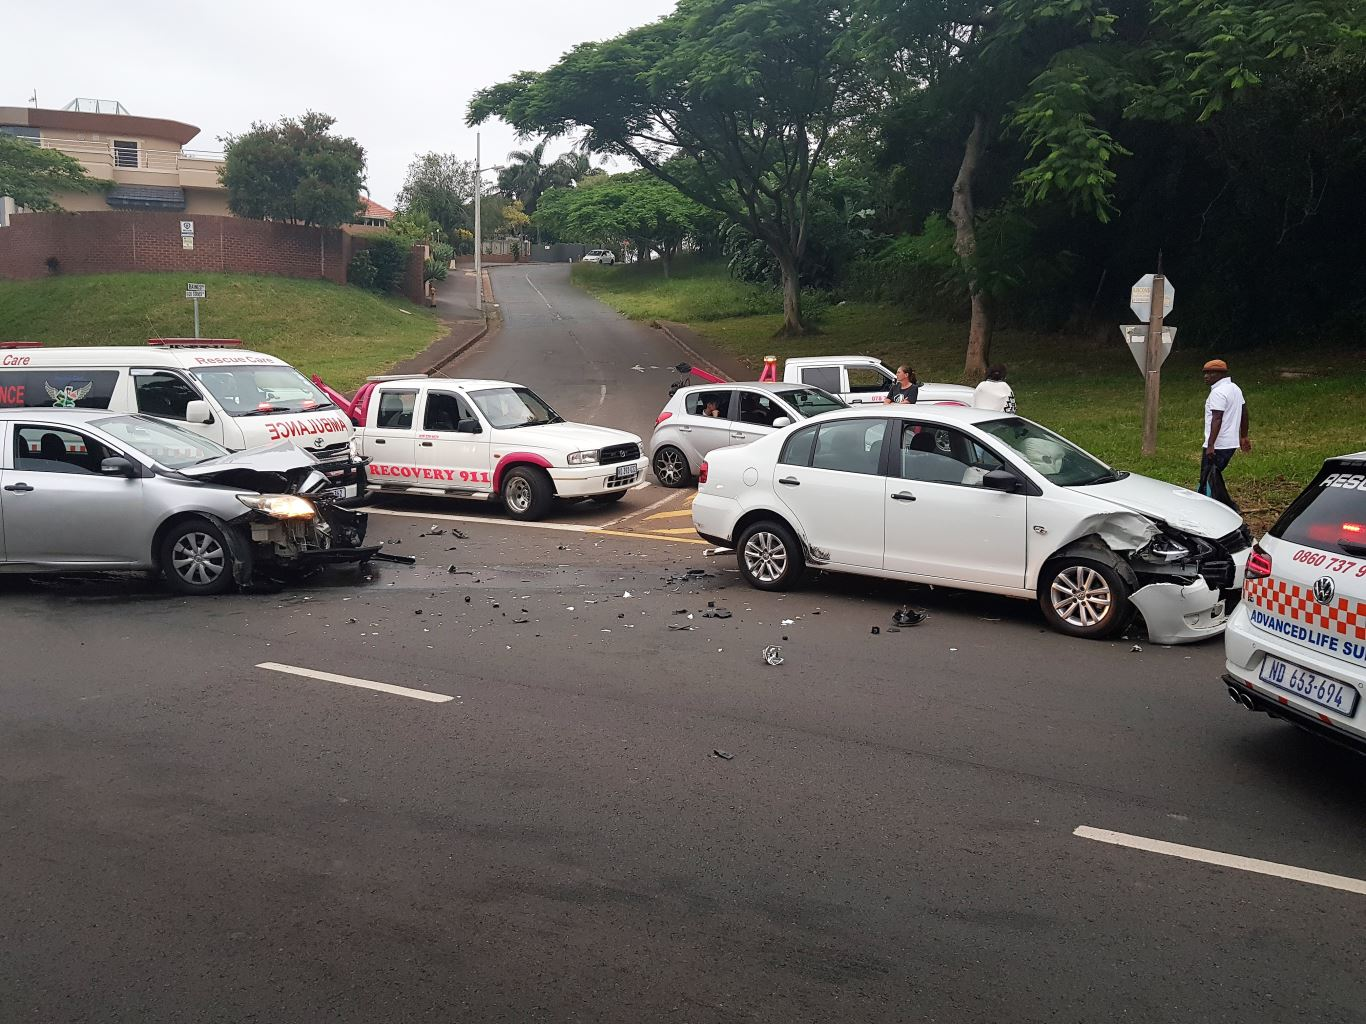 3 Injured in crash on Rick Turner Road near Baines Road in Umbilo